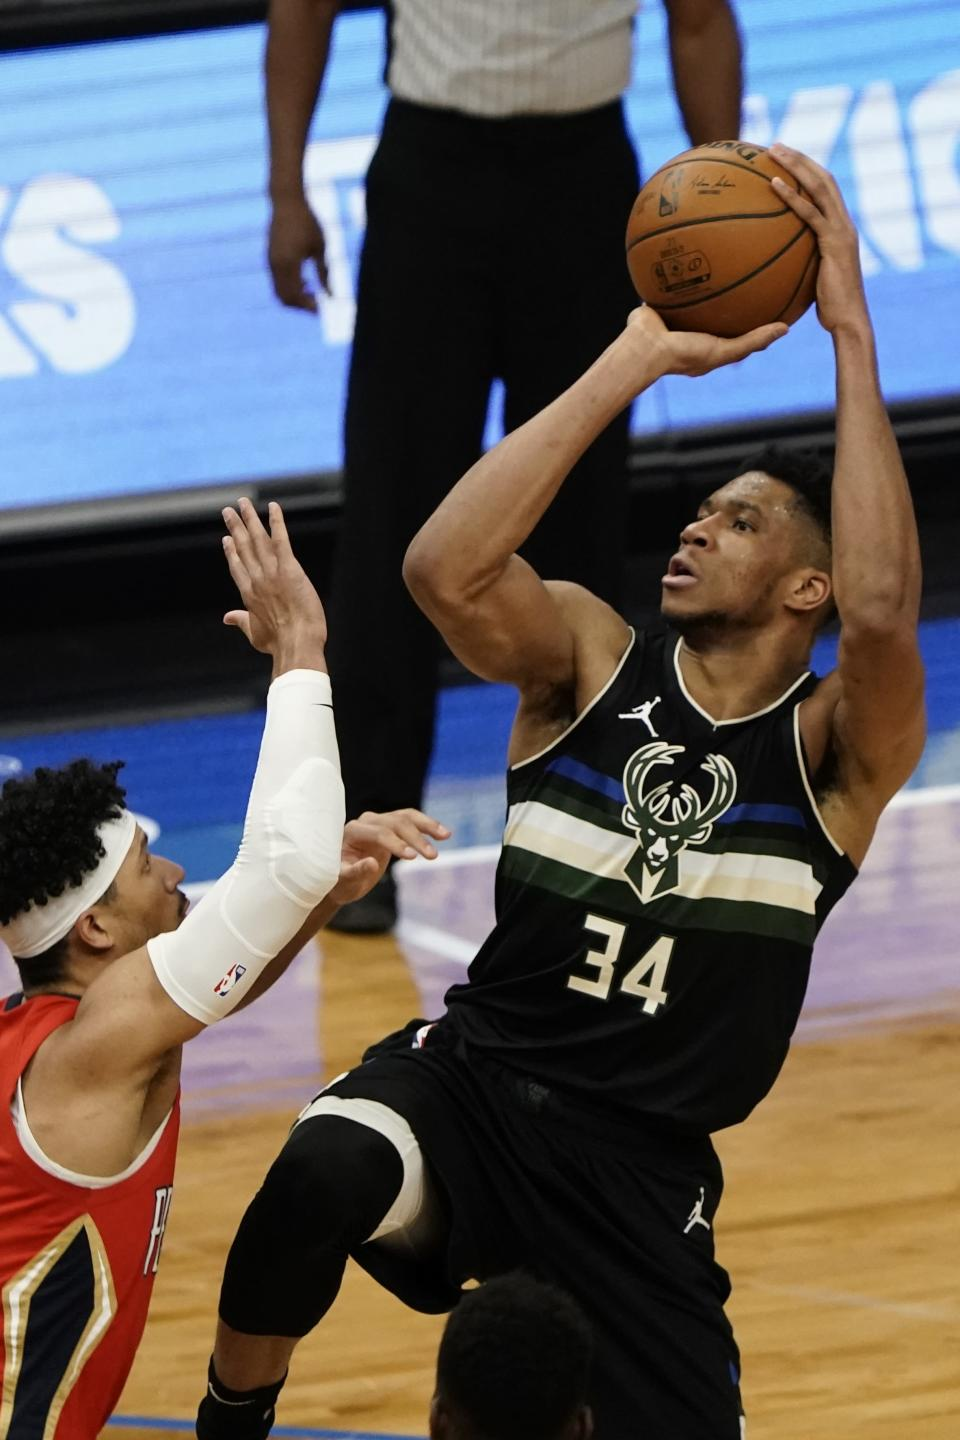 Milwaukee Bucks' Giannis Antetokounmpo shoots over New Orleans Pelicans' Josh Hart during the second half of an NBA basketball game Thursday, Feb. 25, 2021, in Milwaukee. (AP Photo/Morry Gash)